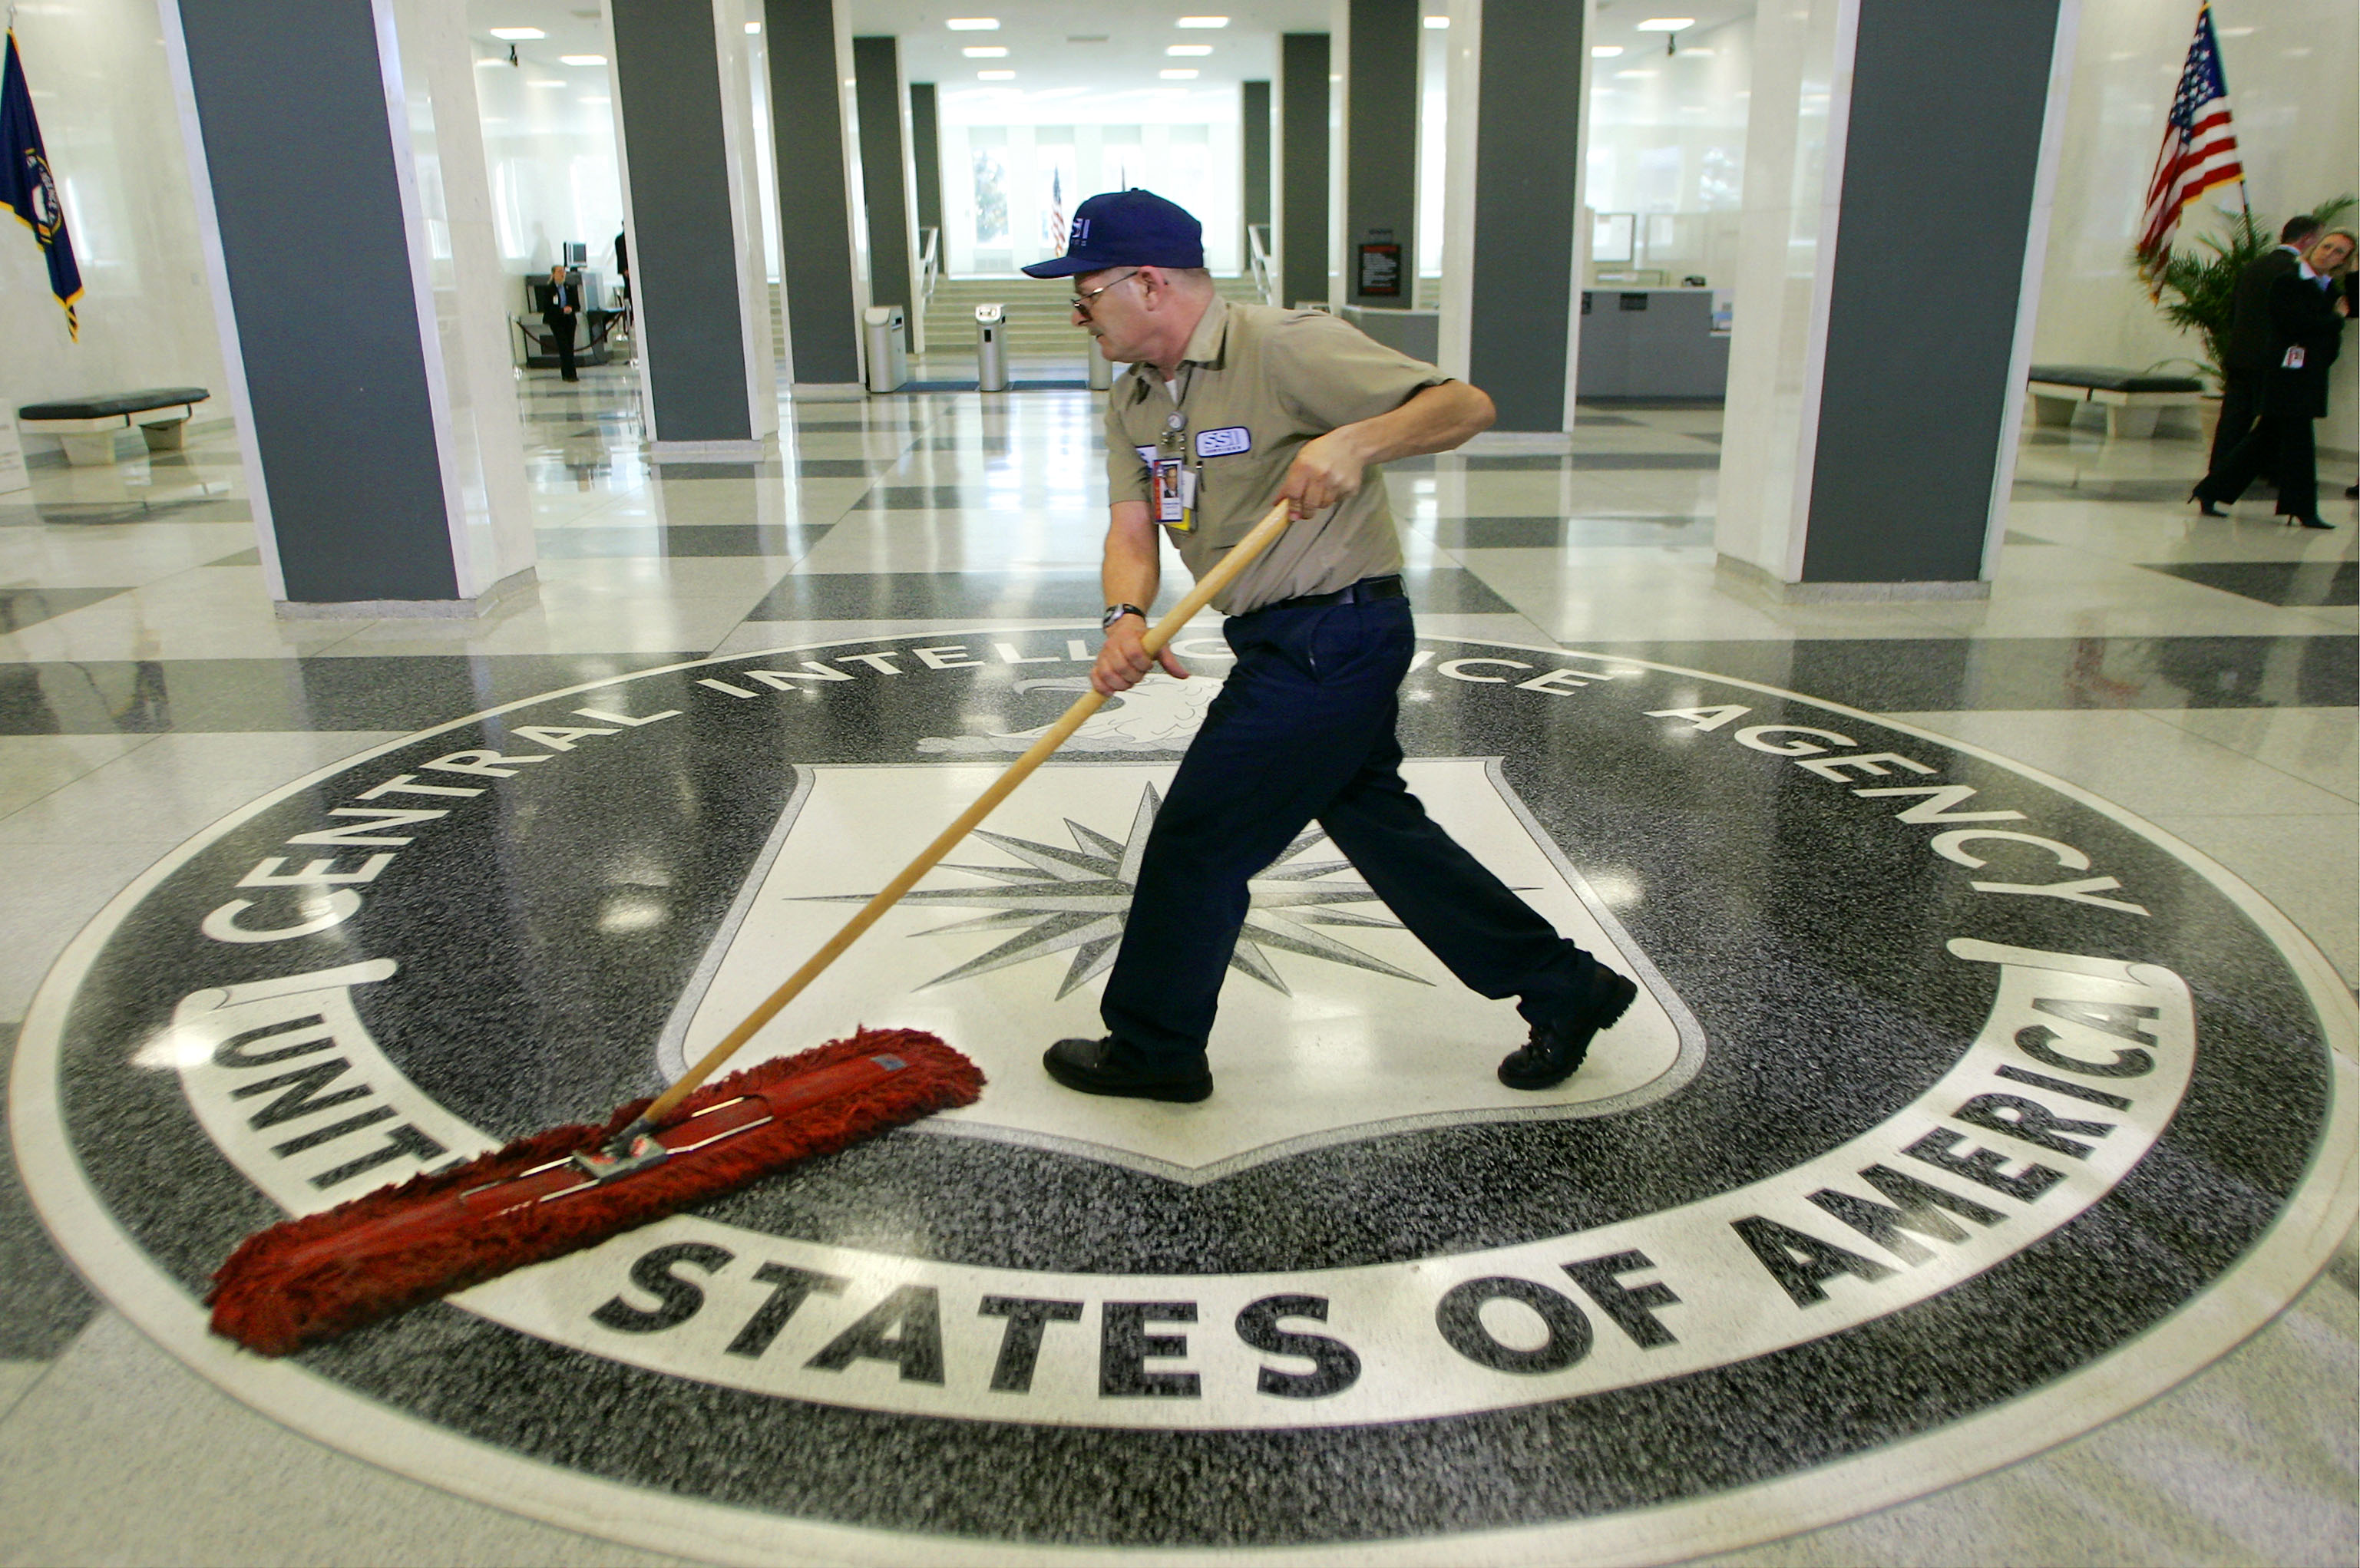 Sources: US Prosecutors Probing Leak of CIA Materials to WikiLeaks